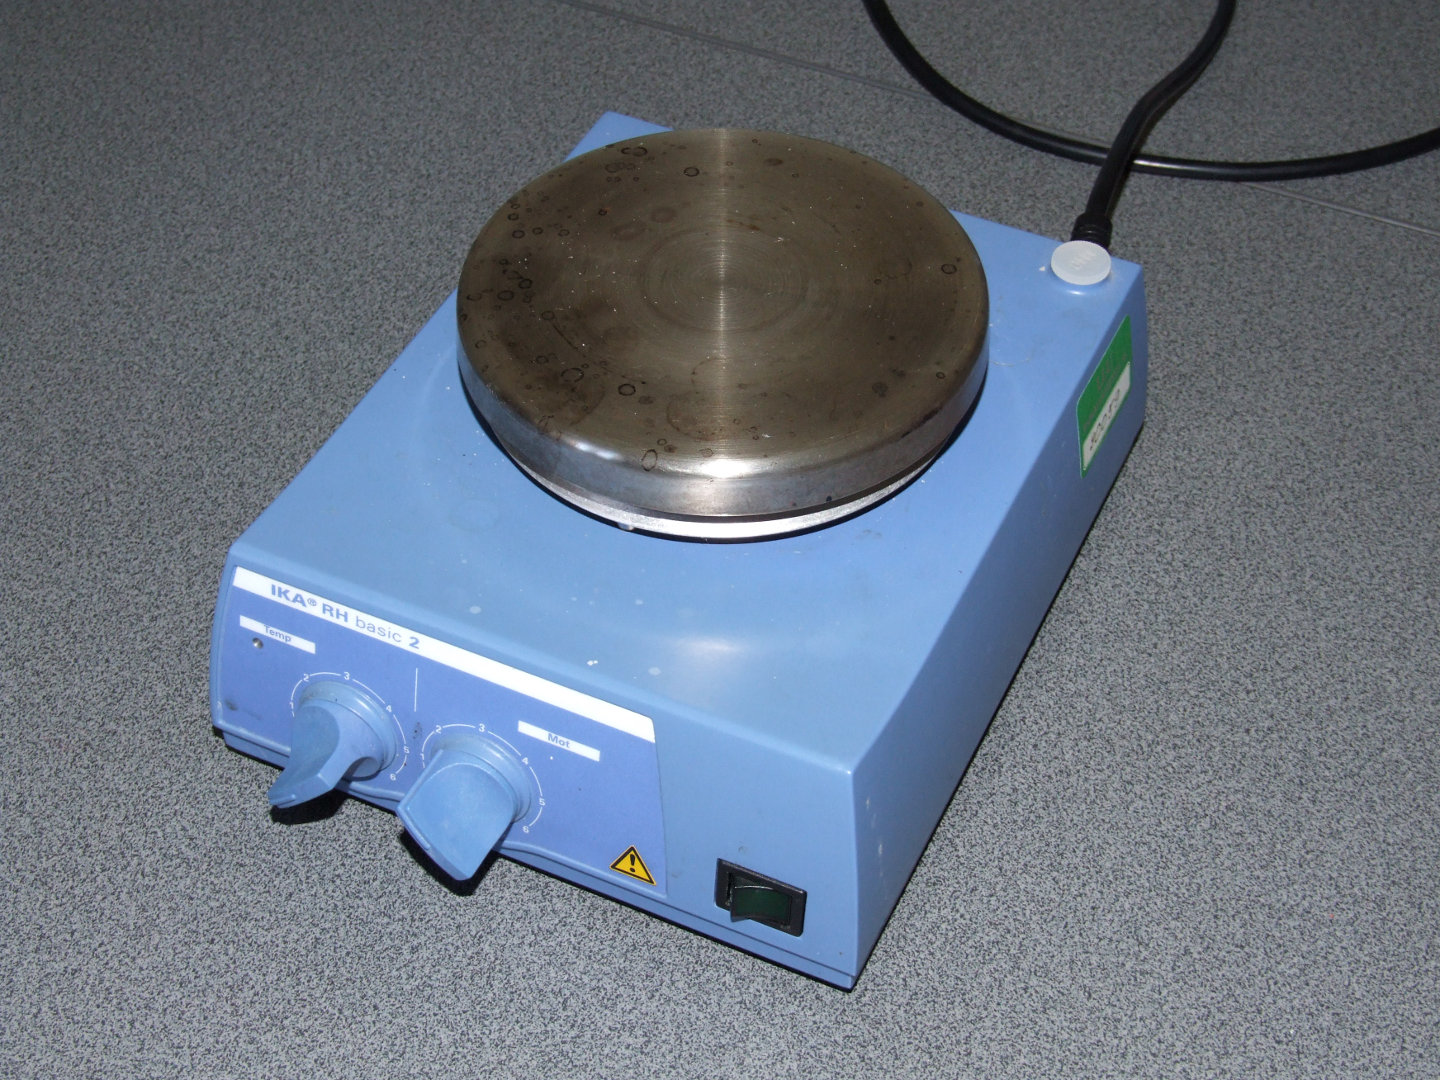 Magnetic stirrer RH basic 2 IKA